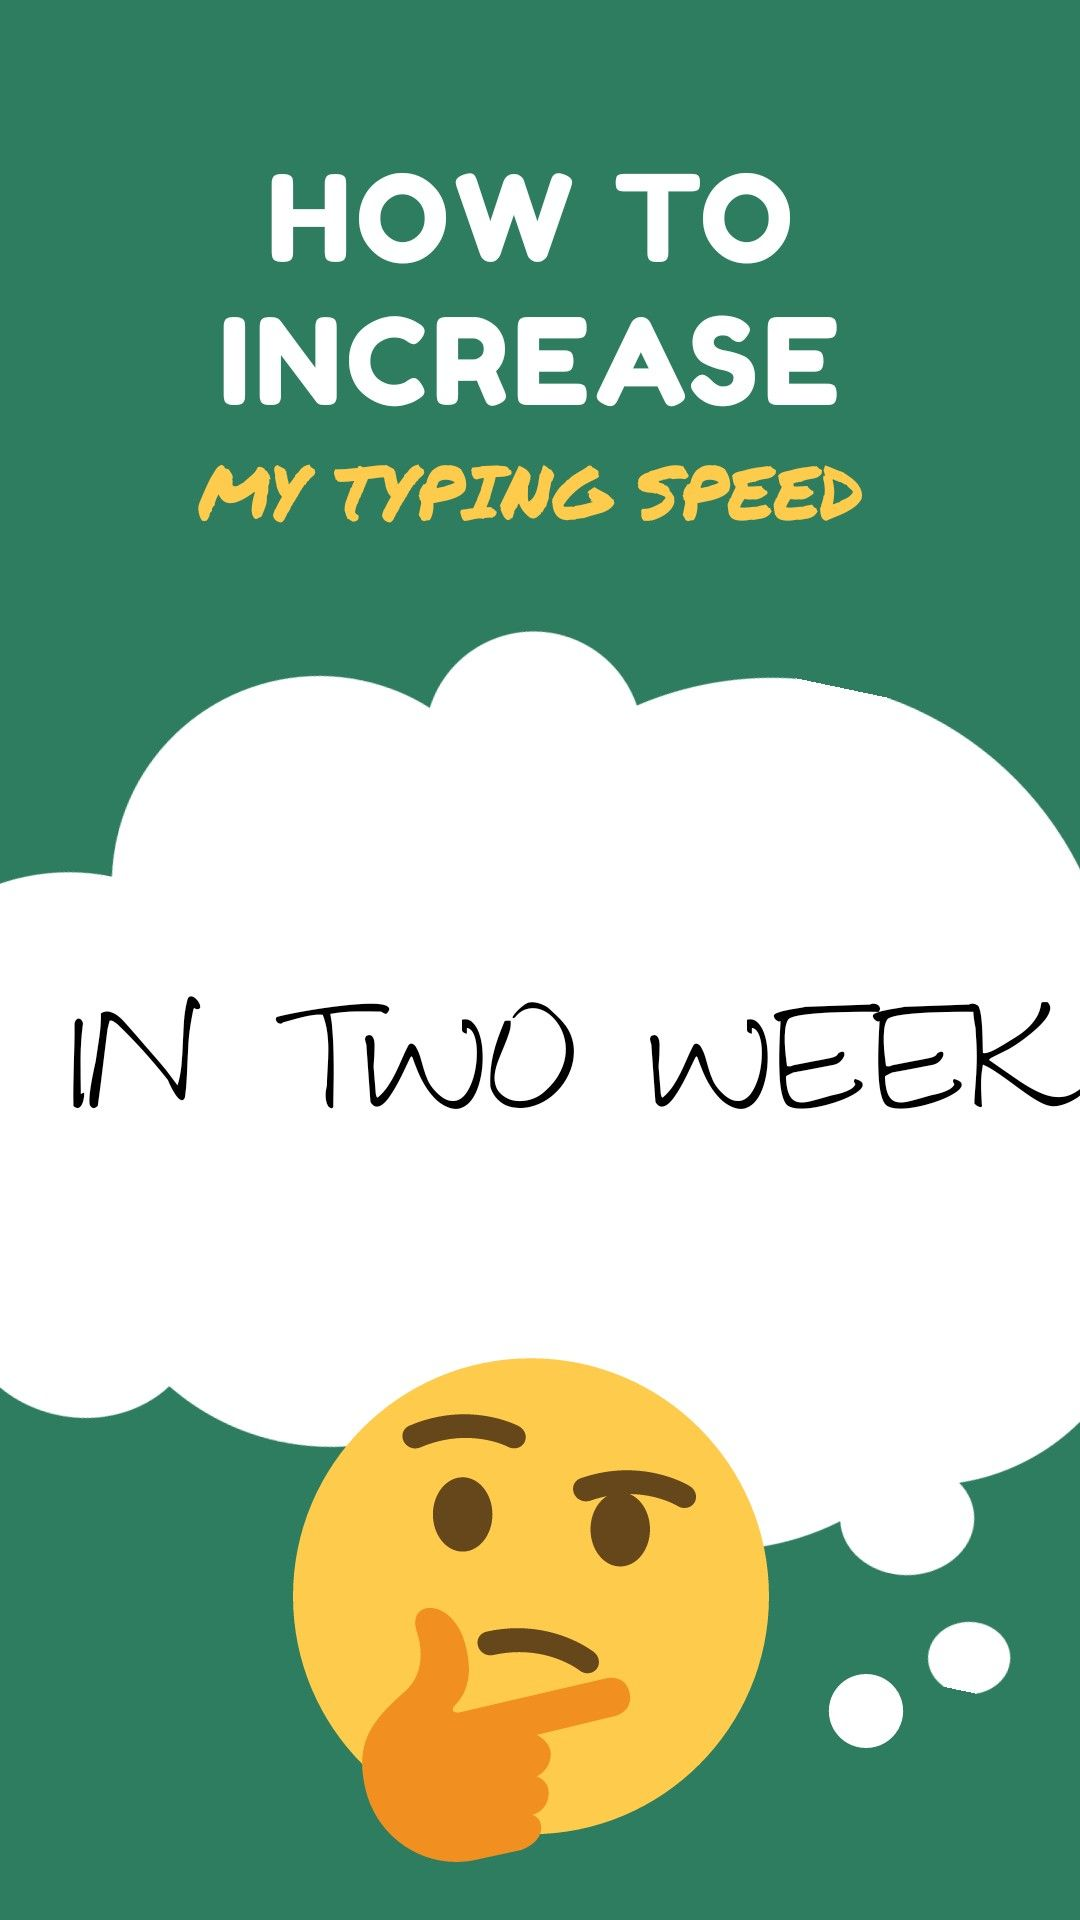 How to increase my typing speed in two week in 2020